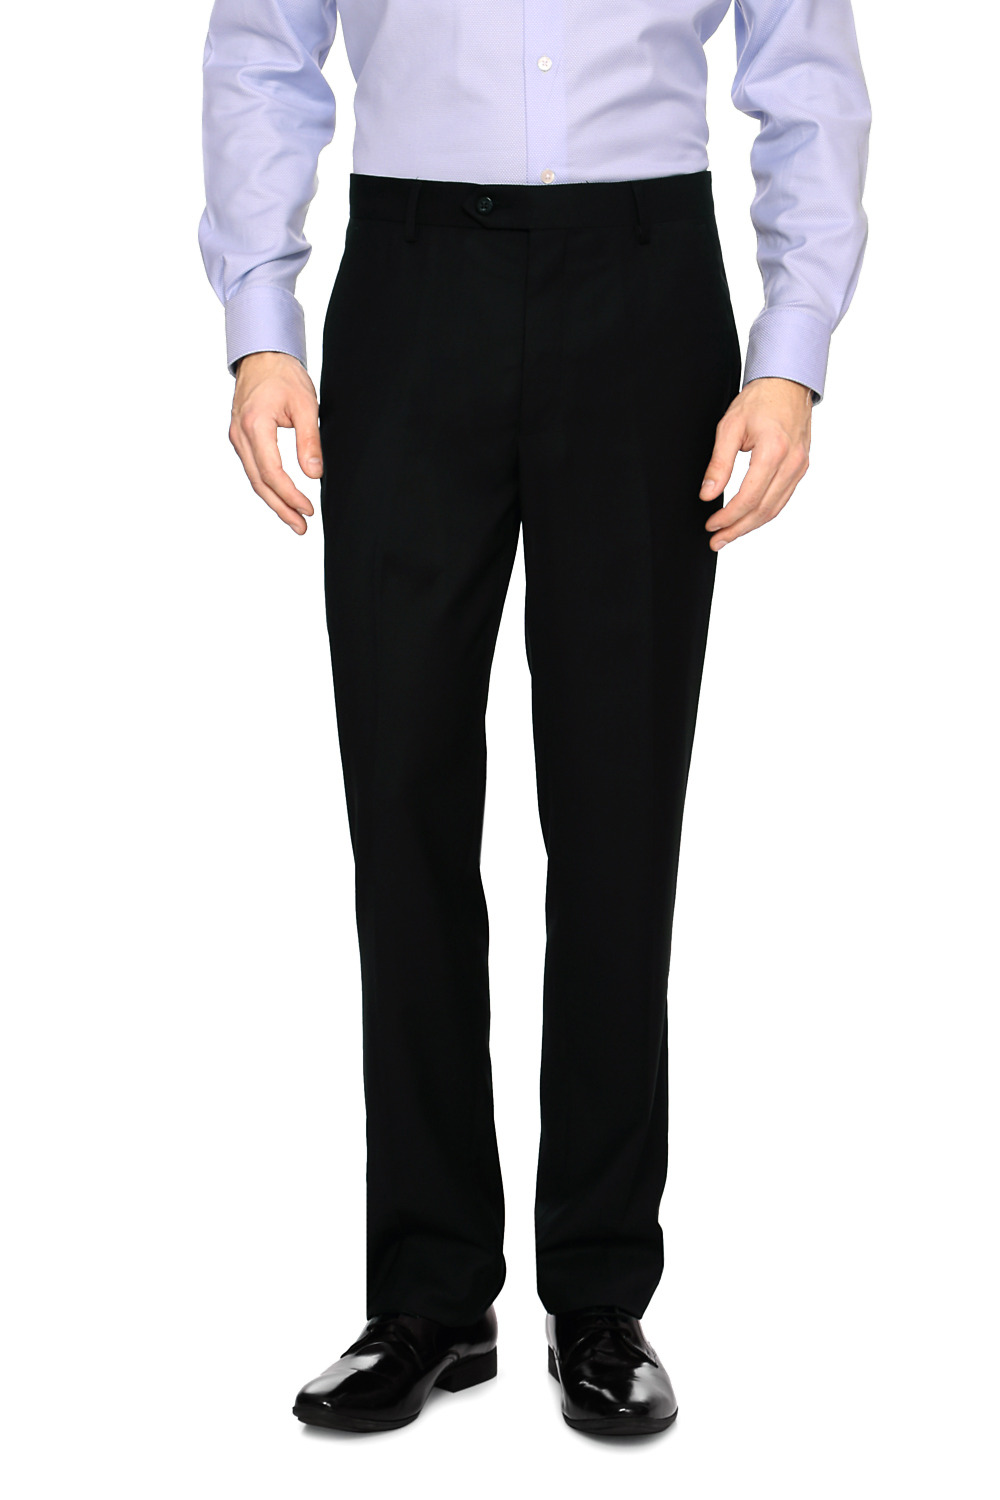 1ab01ea9377 Louis Philippe Trousers & Chinos, Louis Philippe Black Trousers for Men at  Louisphilippe.com